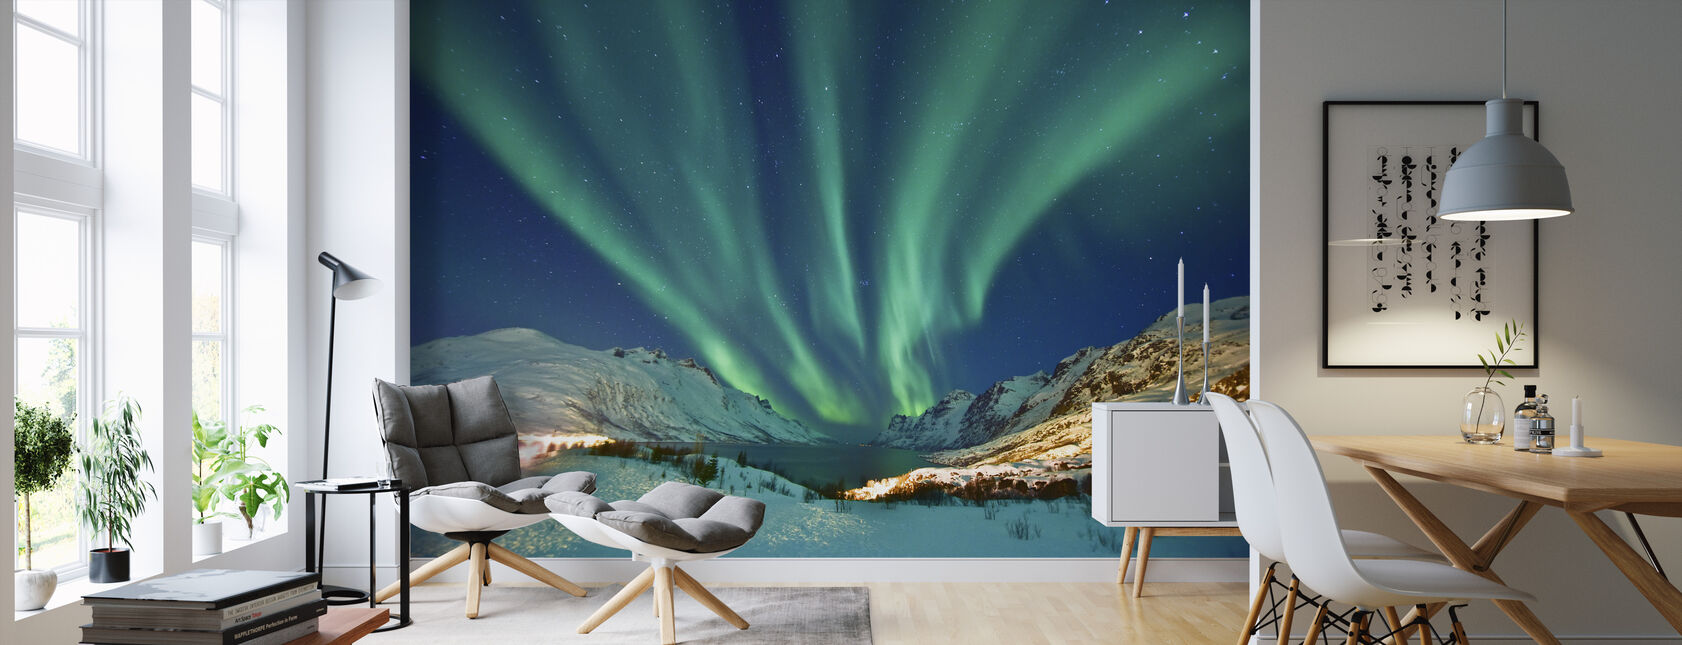 Aurora Borealis - Wallpaper - Living Room